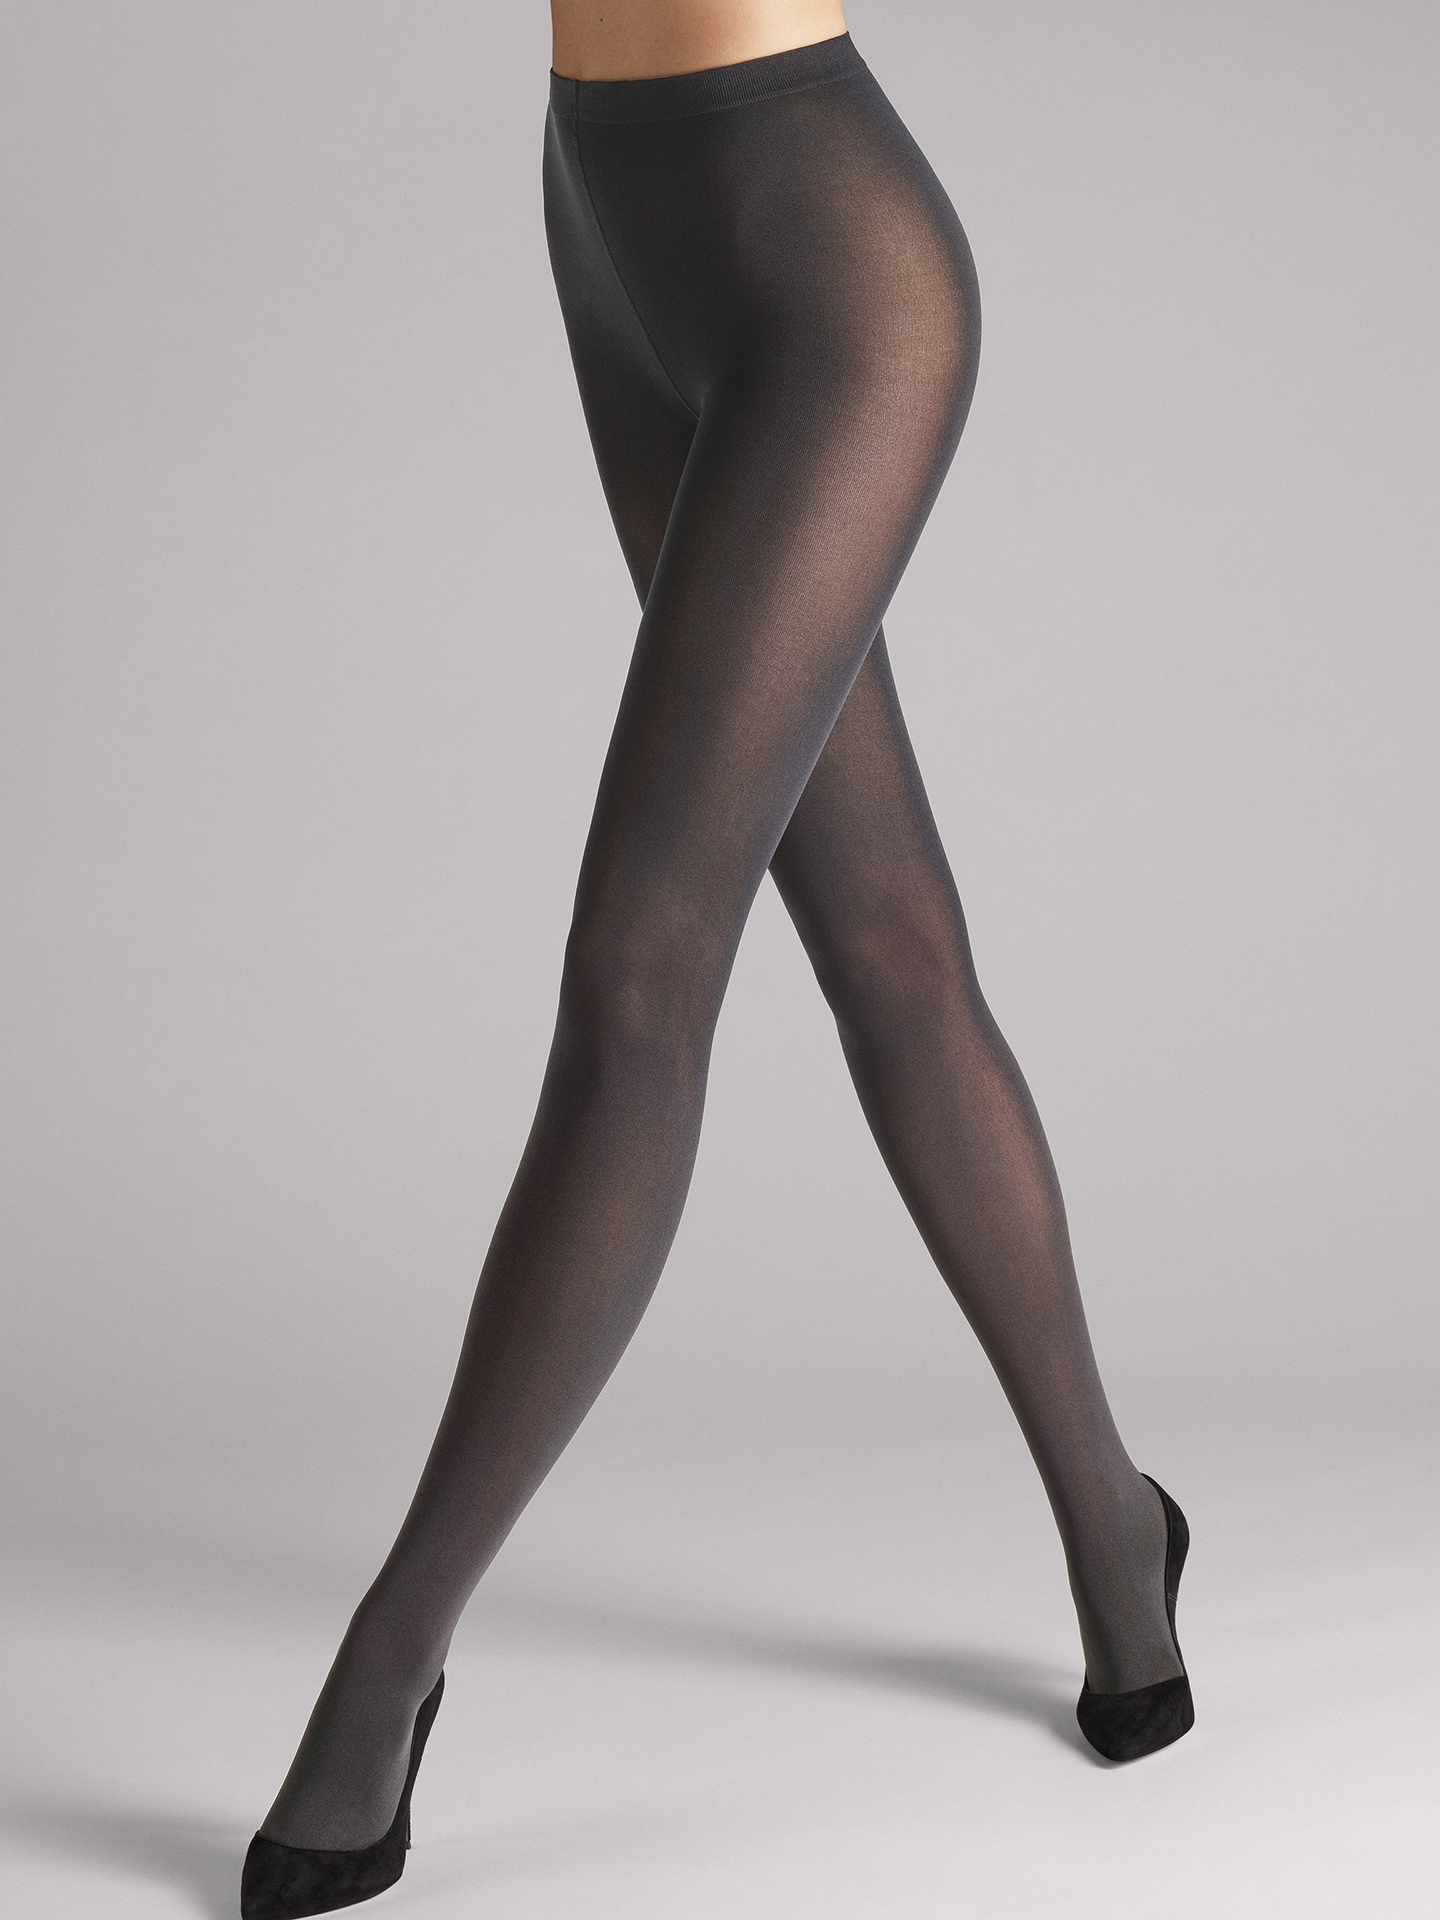 Wolford Apparel & Accessories > Clothing > Collant Velvet de Luxe 66 - 7221 - M